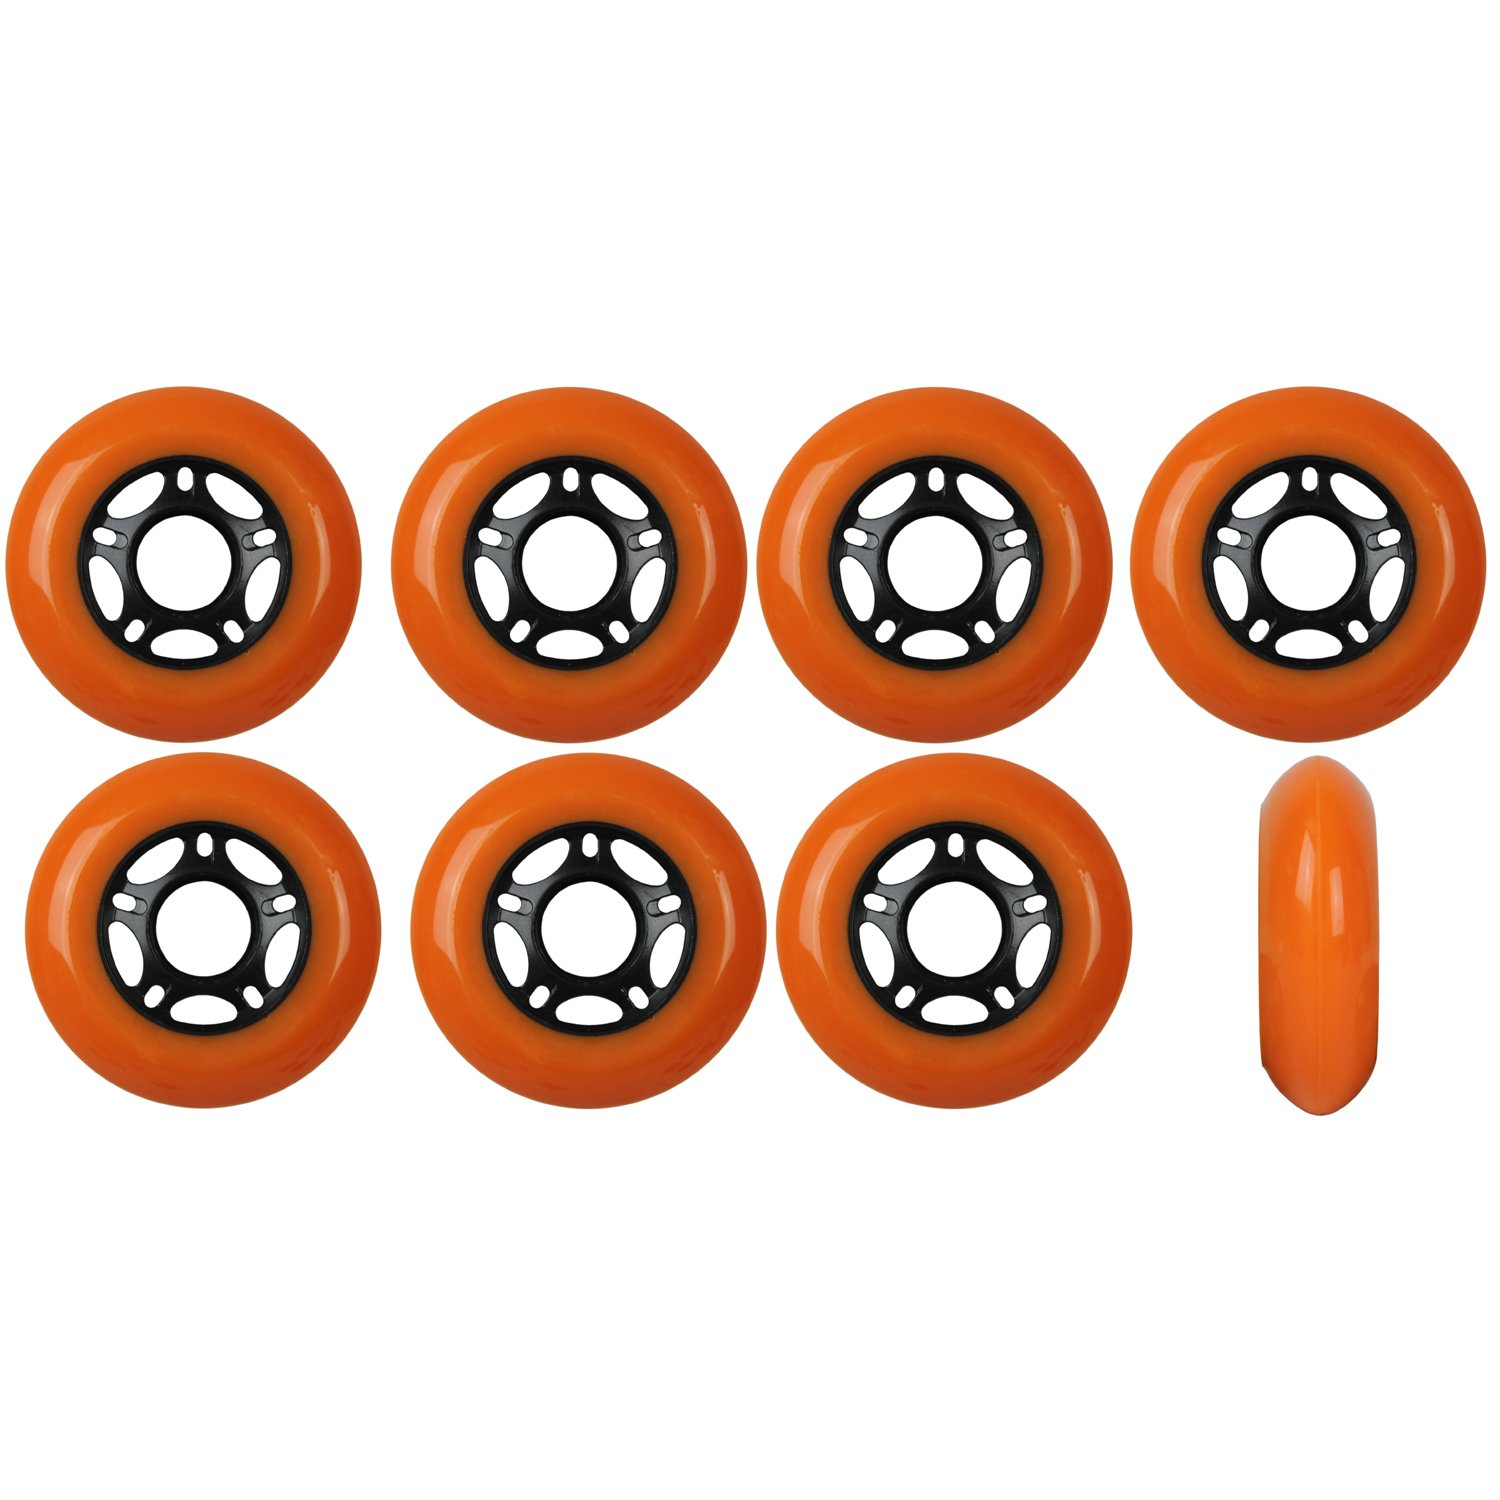 Player's Choice OUTDOOR Inline Skate Wheels ASPHALT Formula 76MM 89a ORANGE x8